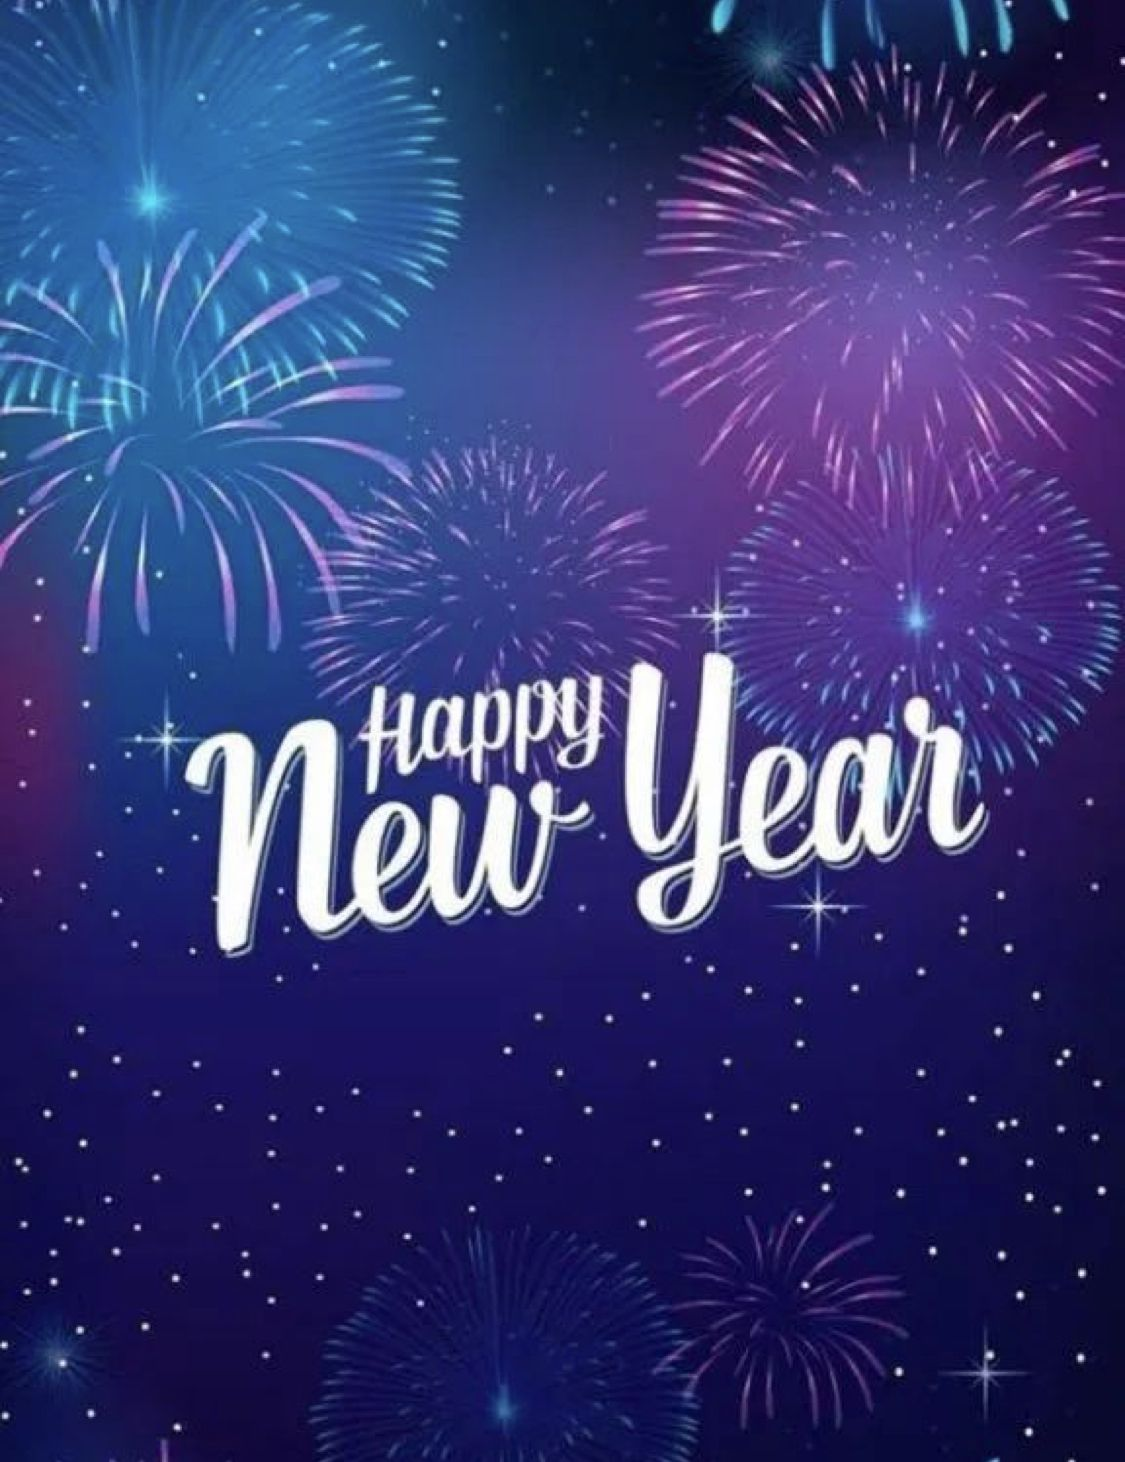 Pin By Cheryl On Aa Happy New Year Wallpaper Happy New Year Background New Year S Eve Background